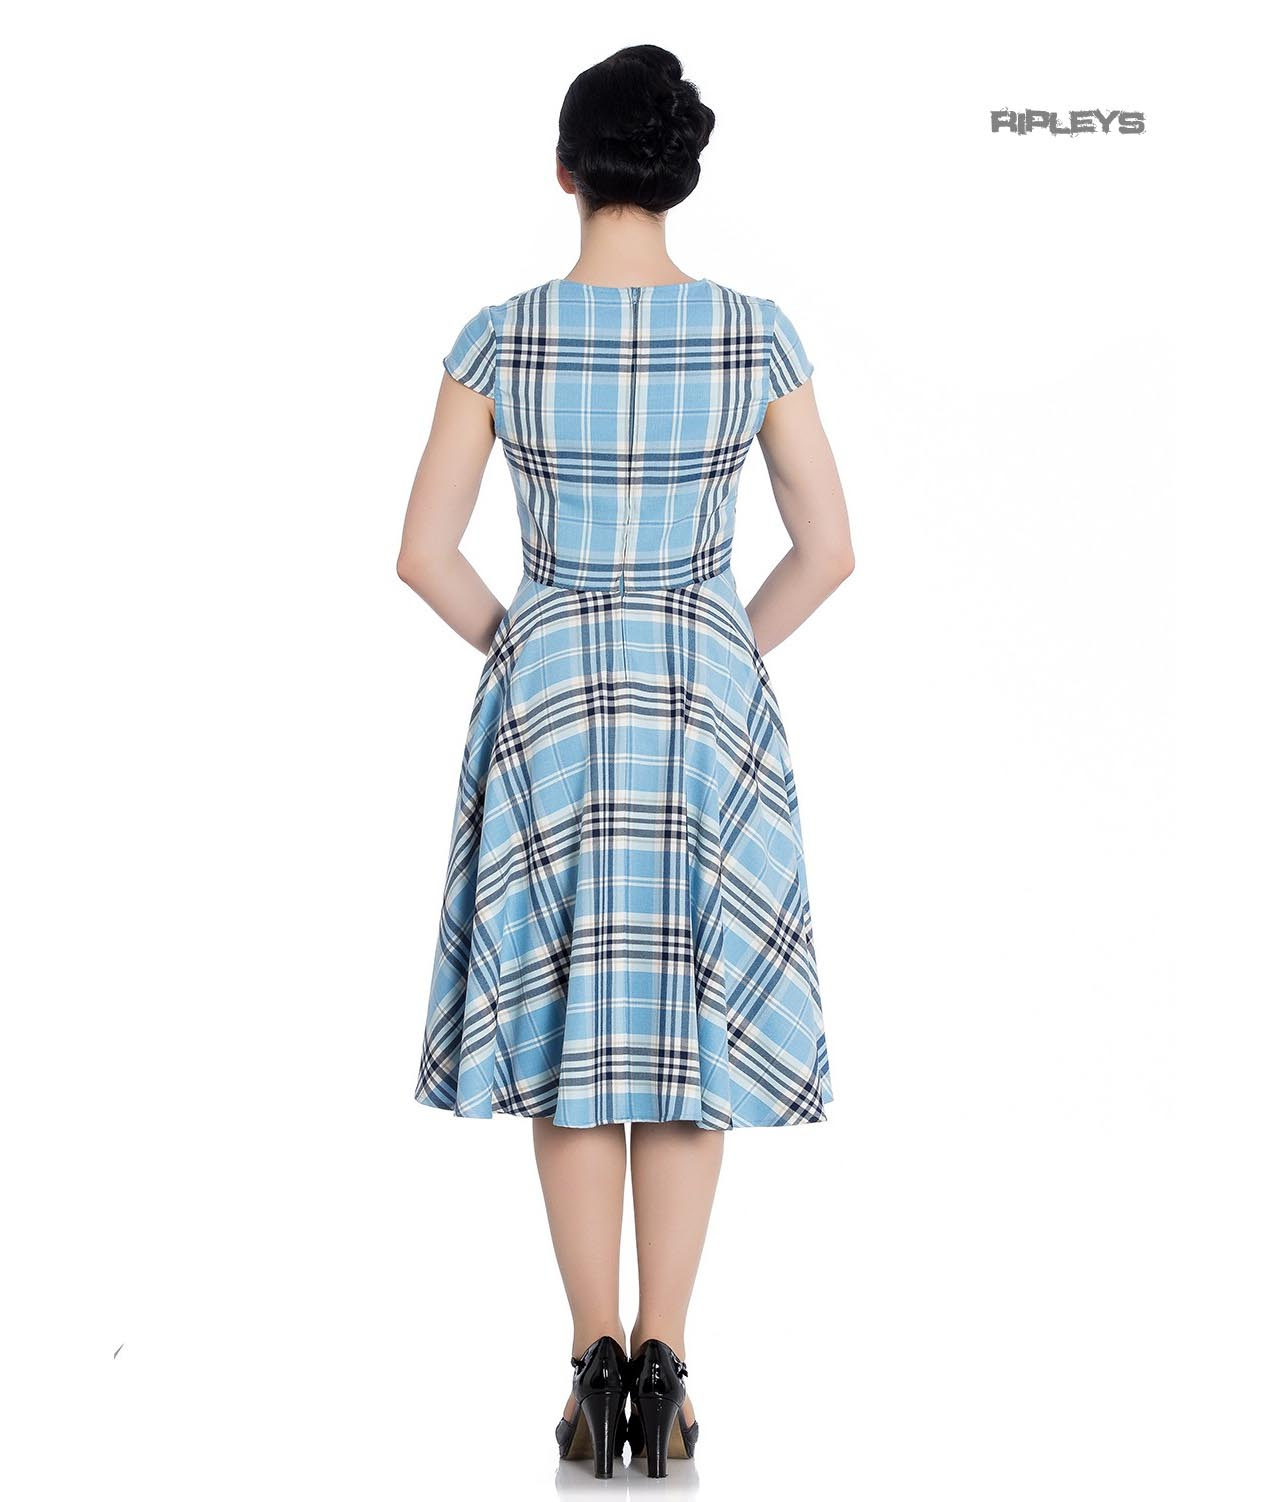 Hell-Bunny-Pinup-50s-Dress-ABERDEEN-Hogmony-Sky-Blue-amp-White-Tartan-All-Sizes thumbnail 4